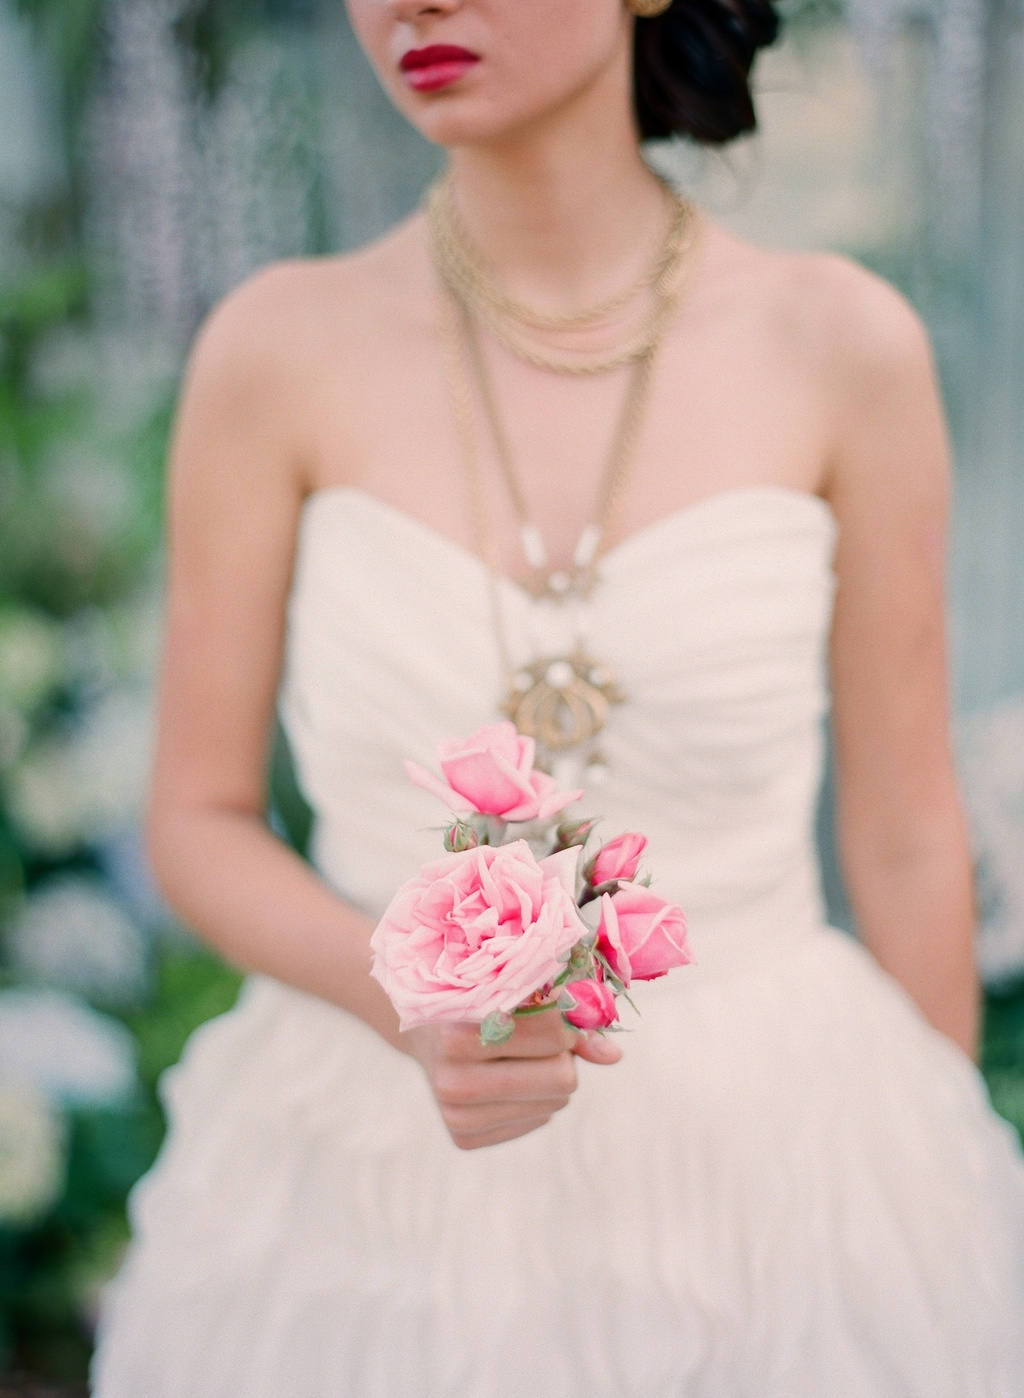 wedding tips for brides get a sample bouquet for wedding dress fitting